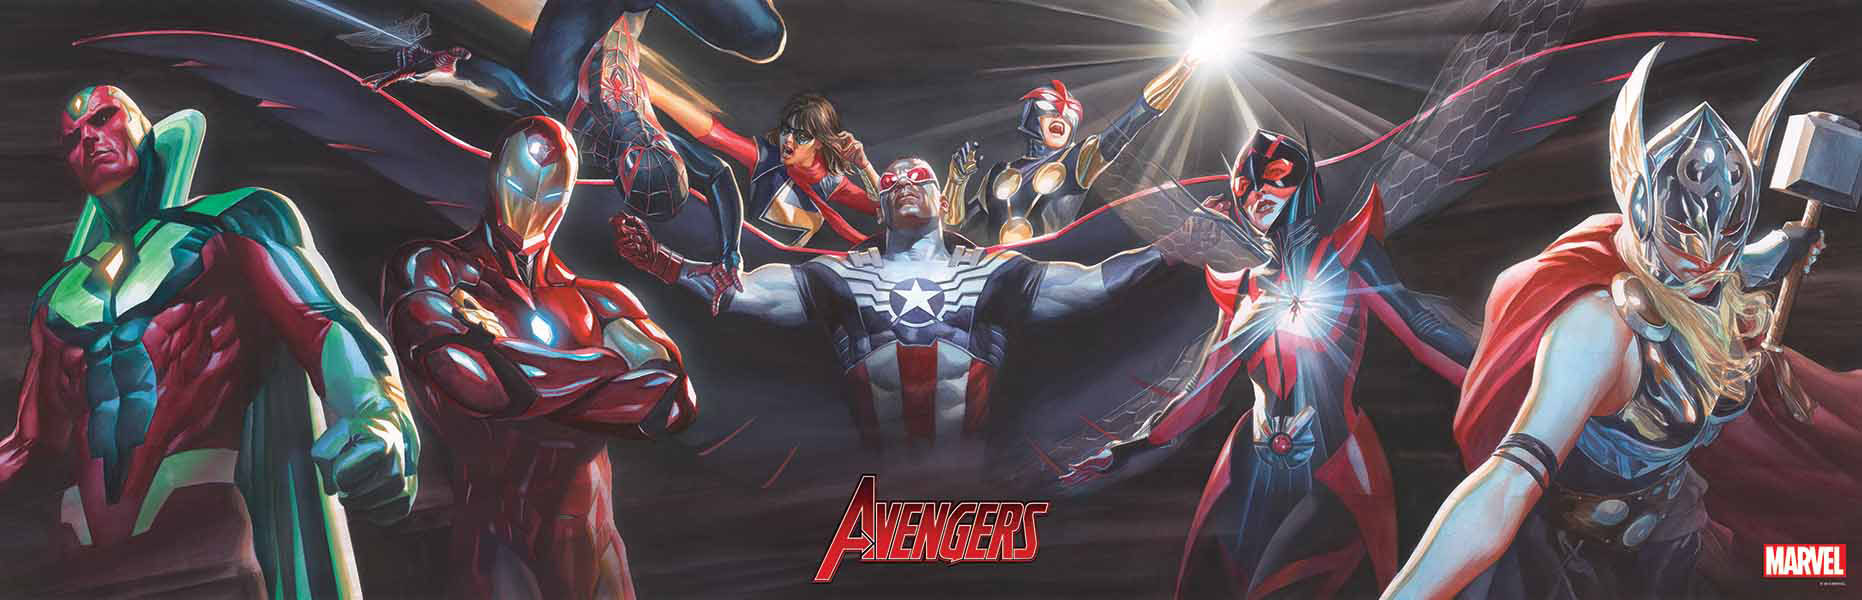 Jun160988 Linking Avengers Covers 1 5 By Alex Ross